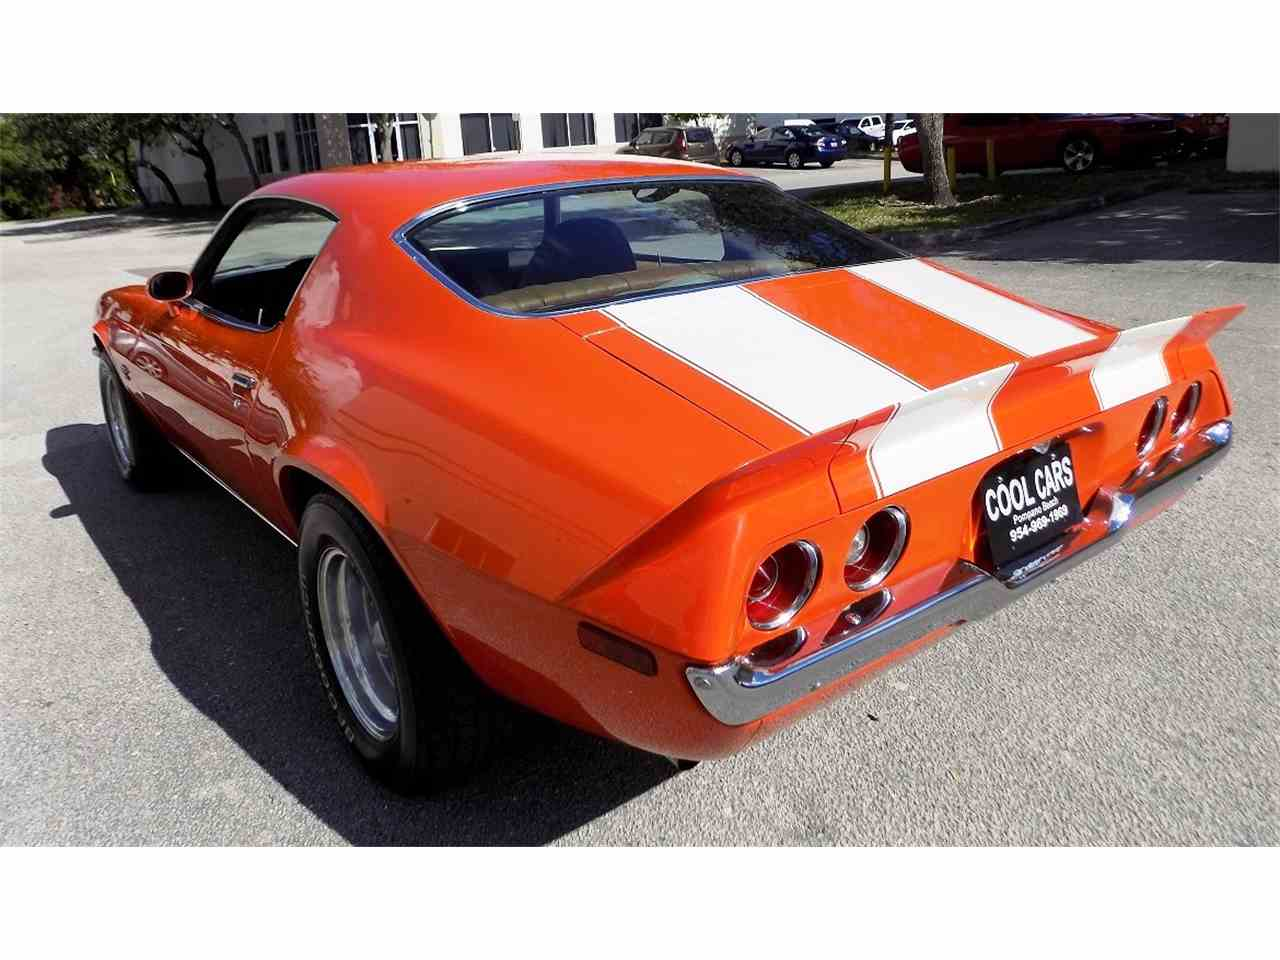 Large Picture of Classic 1972 Chevrolet Camaro located in Florida - $19,995.00 Offered by Cool Cars - MG21